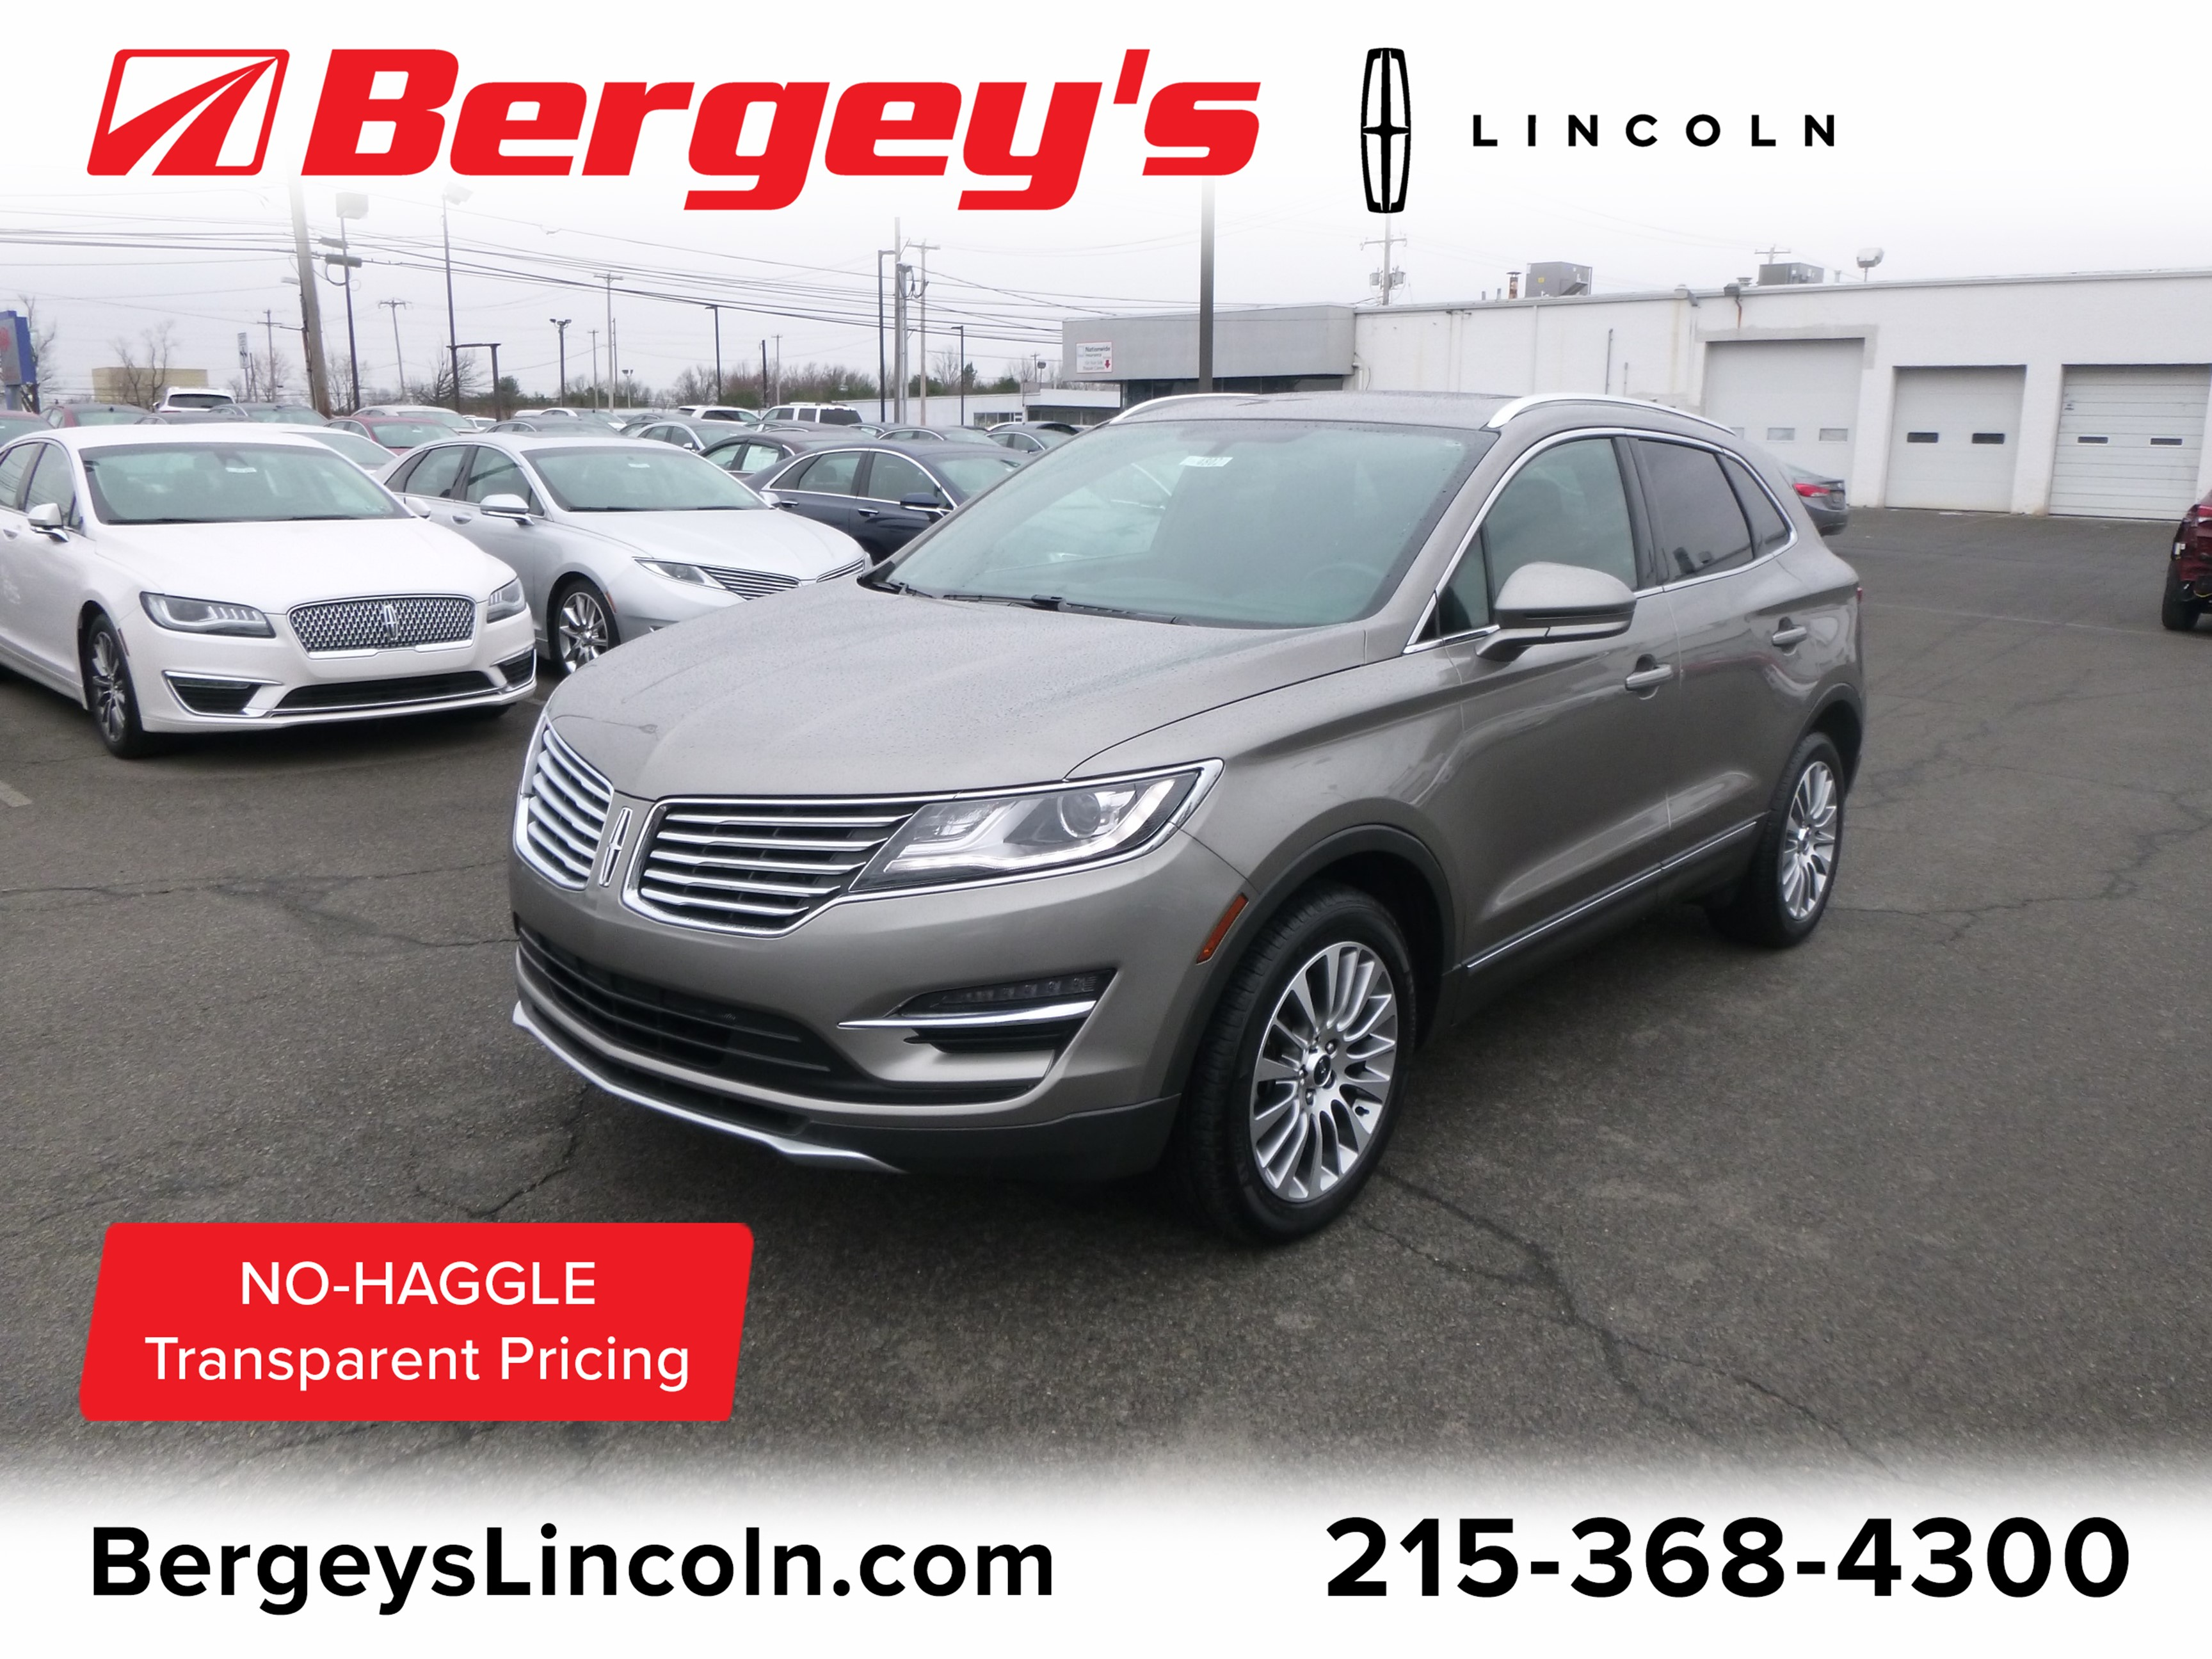 2017 Lincoln MKC 2.3T AWD Reserve w/ Panoramic Vista Roof & Nav SUV